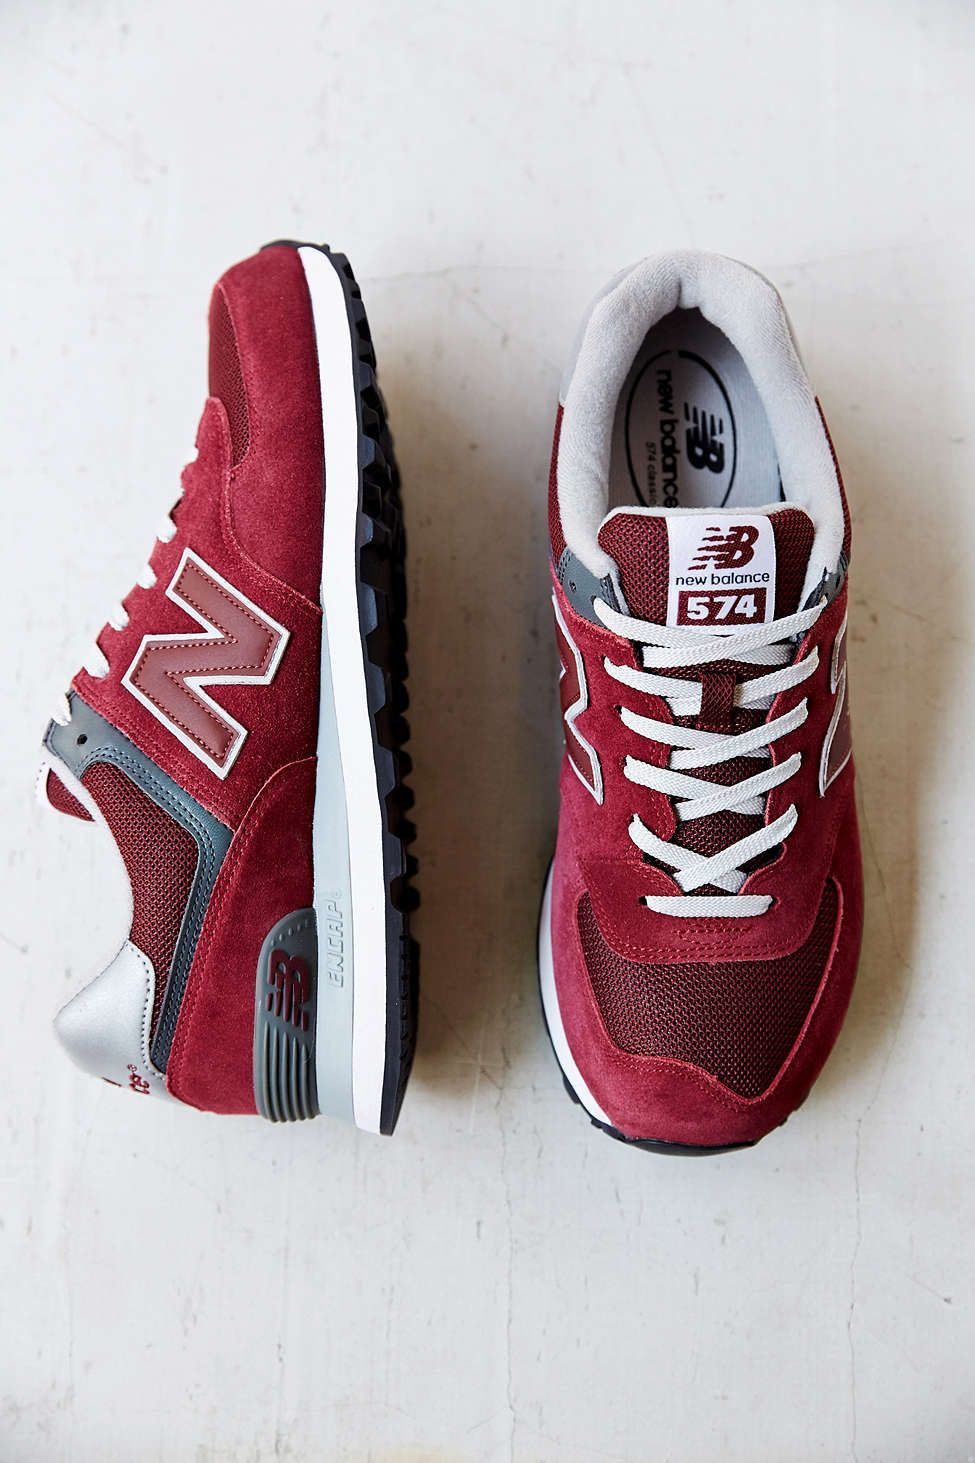 innovative design 723a3 5a644 New Balance 574 Core Sneaker - Urban Outfitters Chaussures Homme, Chaussure  Basket, Soulier,